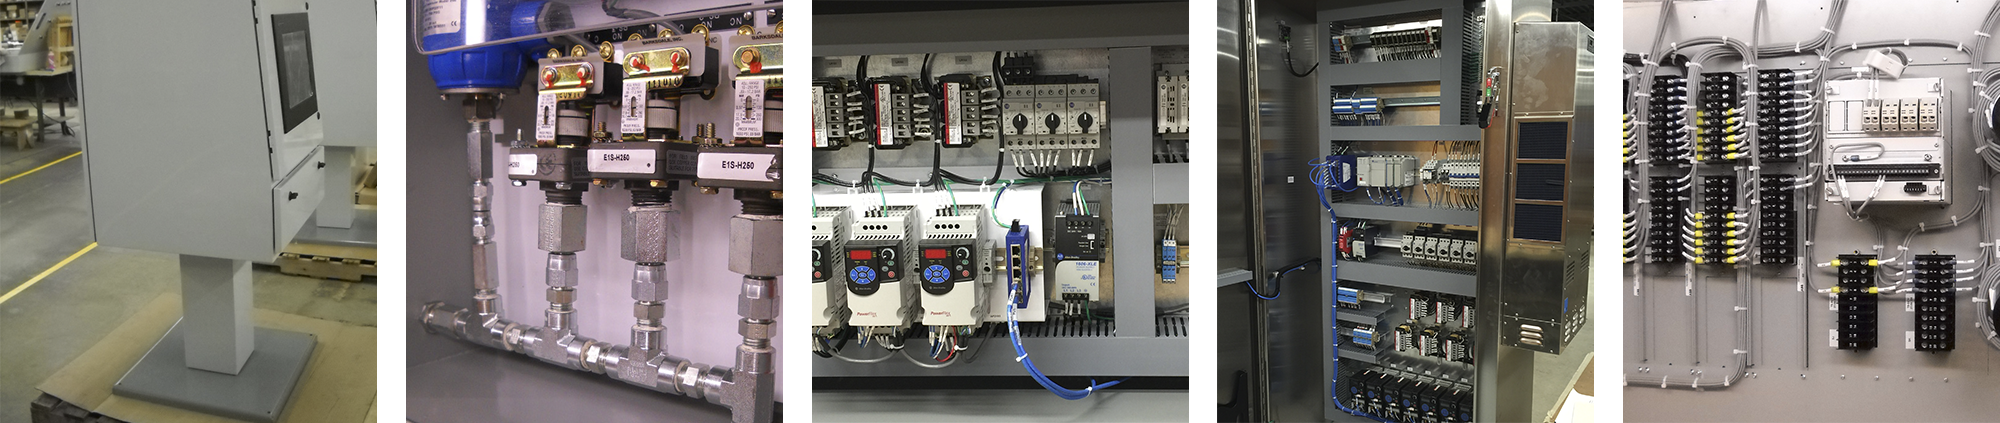 Control Panel Manufacturing Installation Trola Industries Inc Wiring An Electrical Integrity And Safety Are Top Priorities All Panels Circuit Tested Cleaned Plastic Wrapped Before Shipment To Insure A